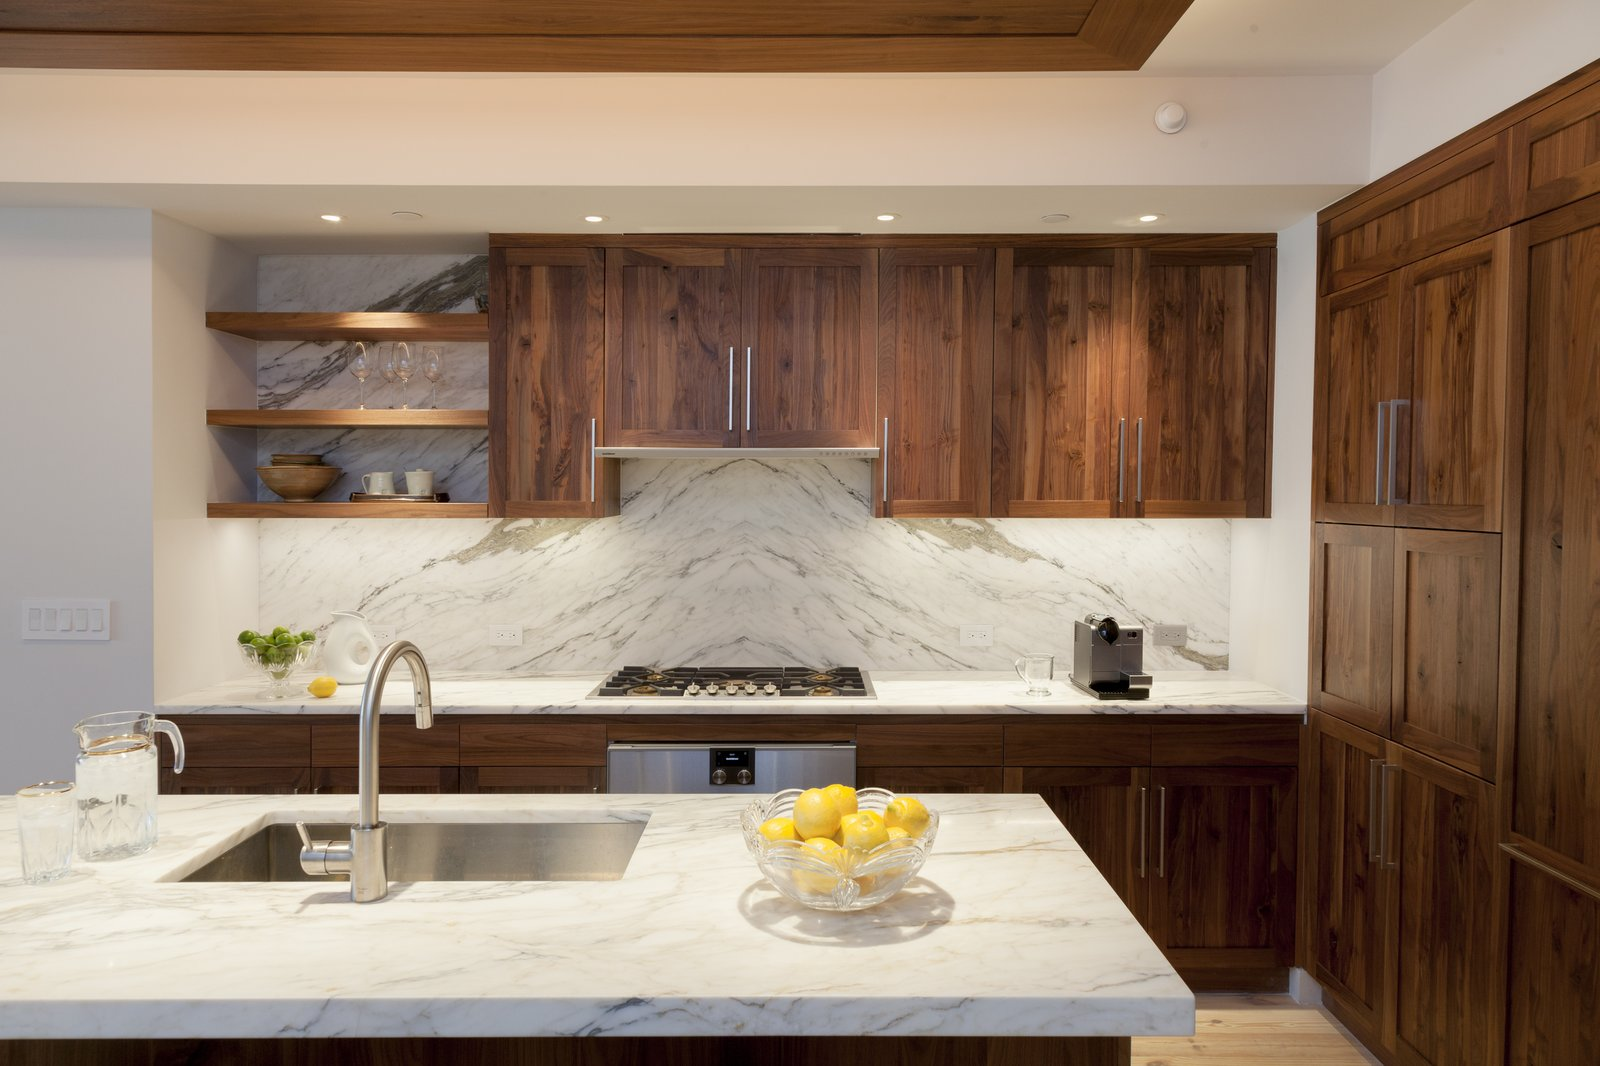 Kitchen, Marble, Wood, Stone Slab, Ceiling, Pendant, Light Hardwood, Accent, Recessed, Refrigerator, Wall Oven, Cooktops, Range, Range Hood, Wine Cooler, Ice Maker, Dishwasher, Microwave, and Undermount Walnut and book-matched  Calcutta kitchen  Best Kitchen Range Hood Ice Maker Light Hardwood Range Stone Slab Ceiling Wood Photos from Pierhouse At Brooklyn Bridge Park Condo